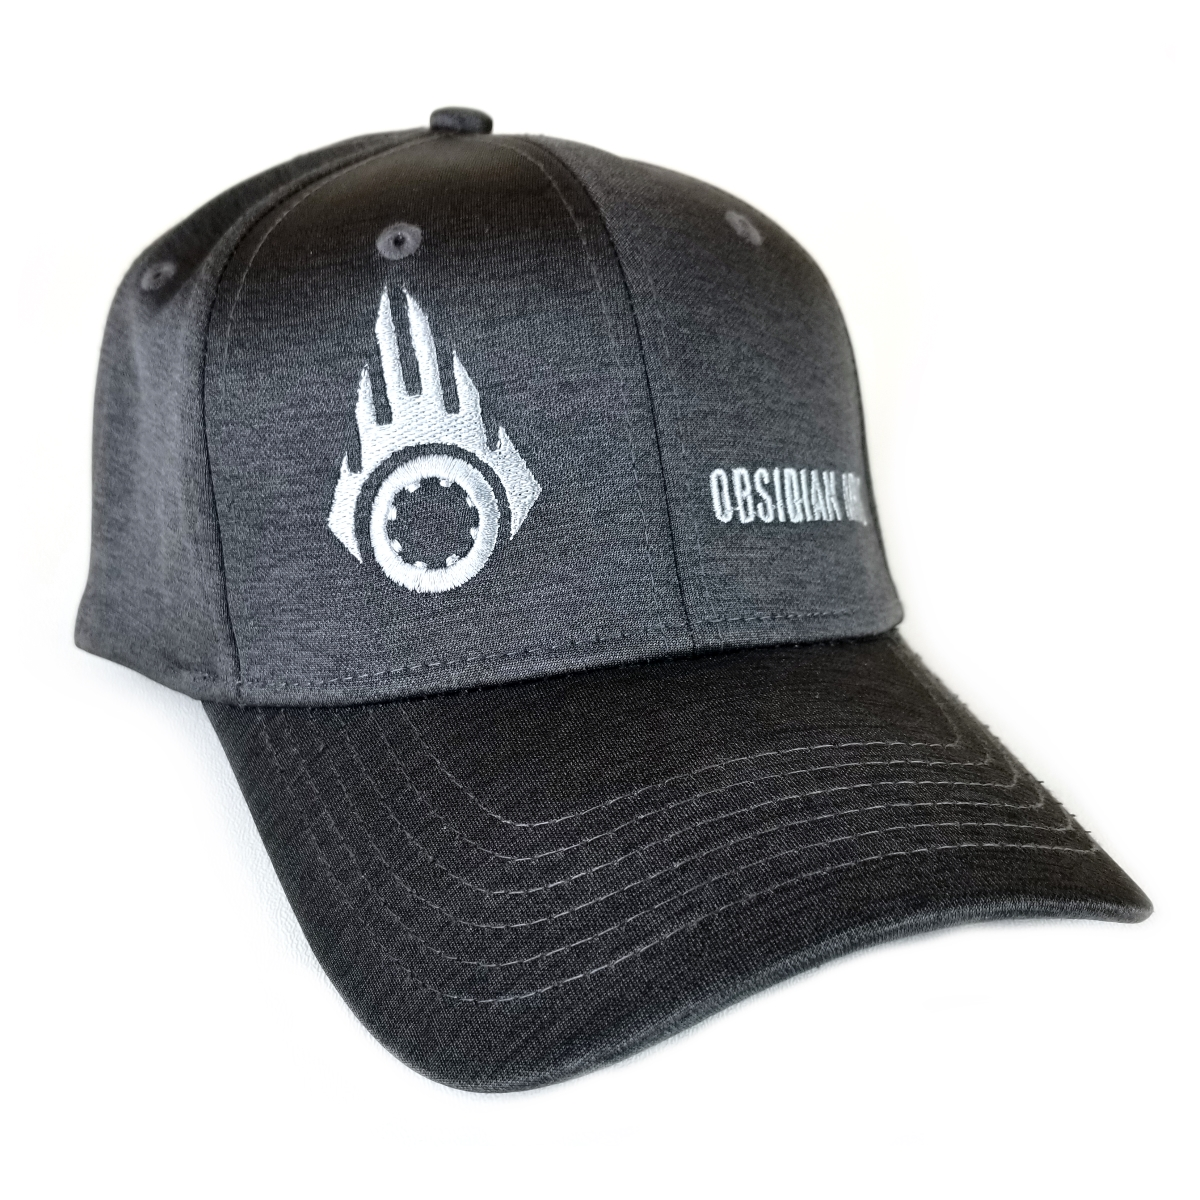 Black Charcoal and Silver Hat